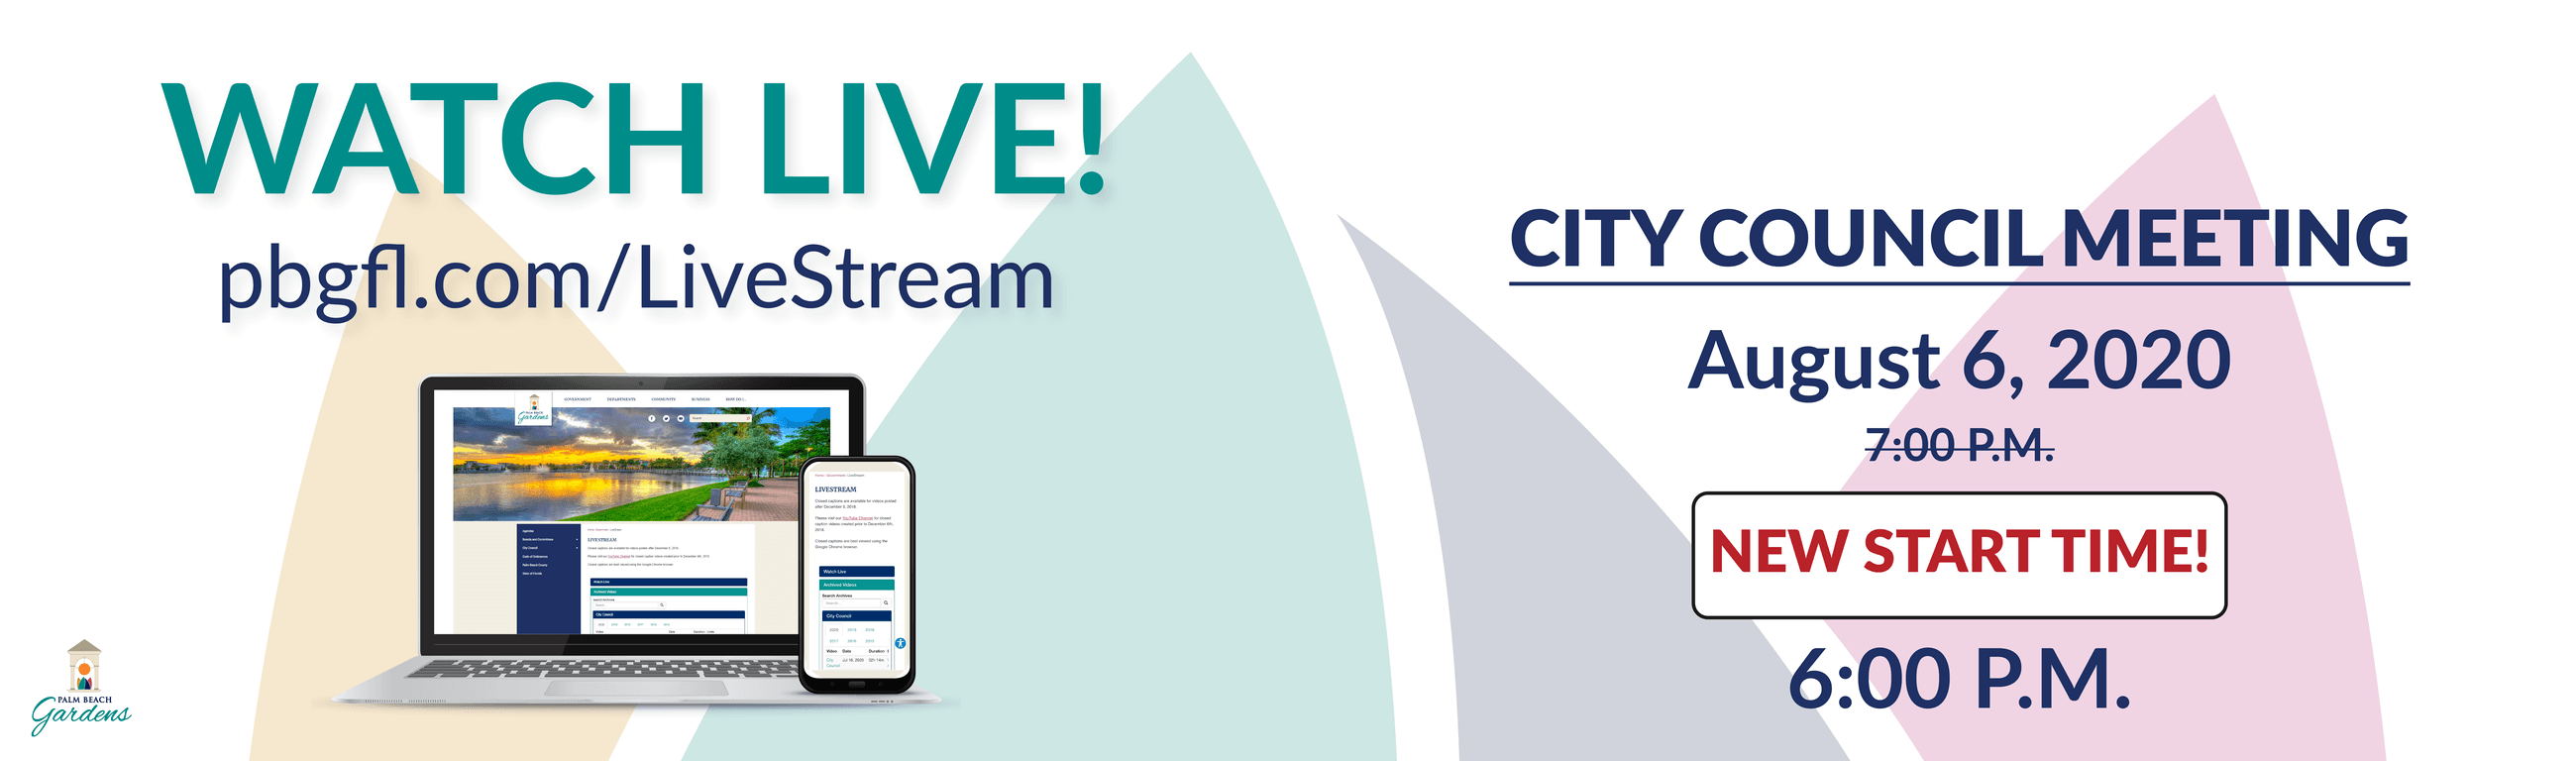 Watch City Council Meeting Live